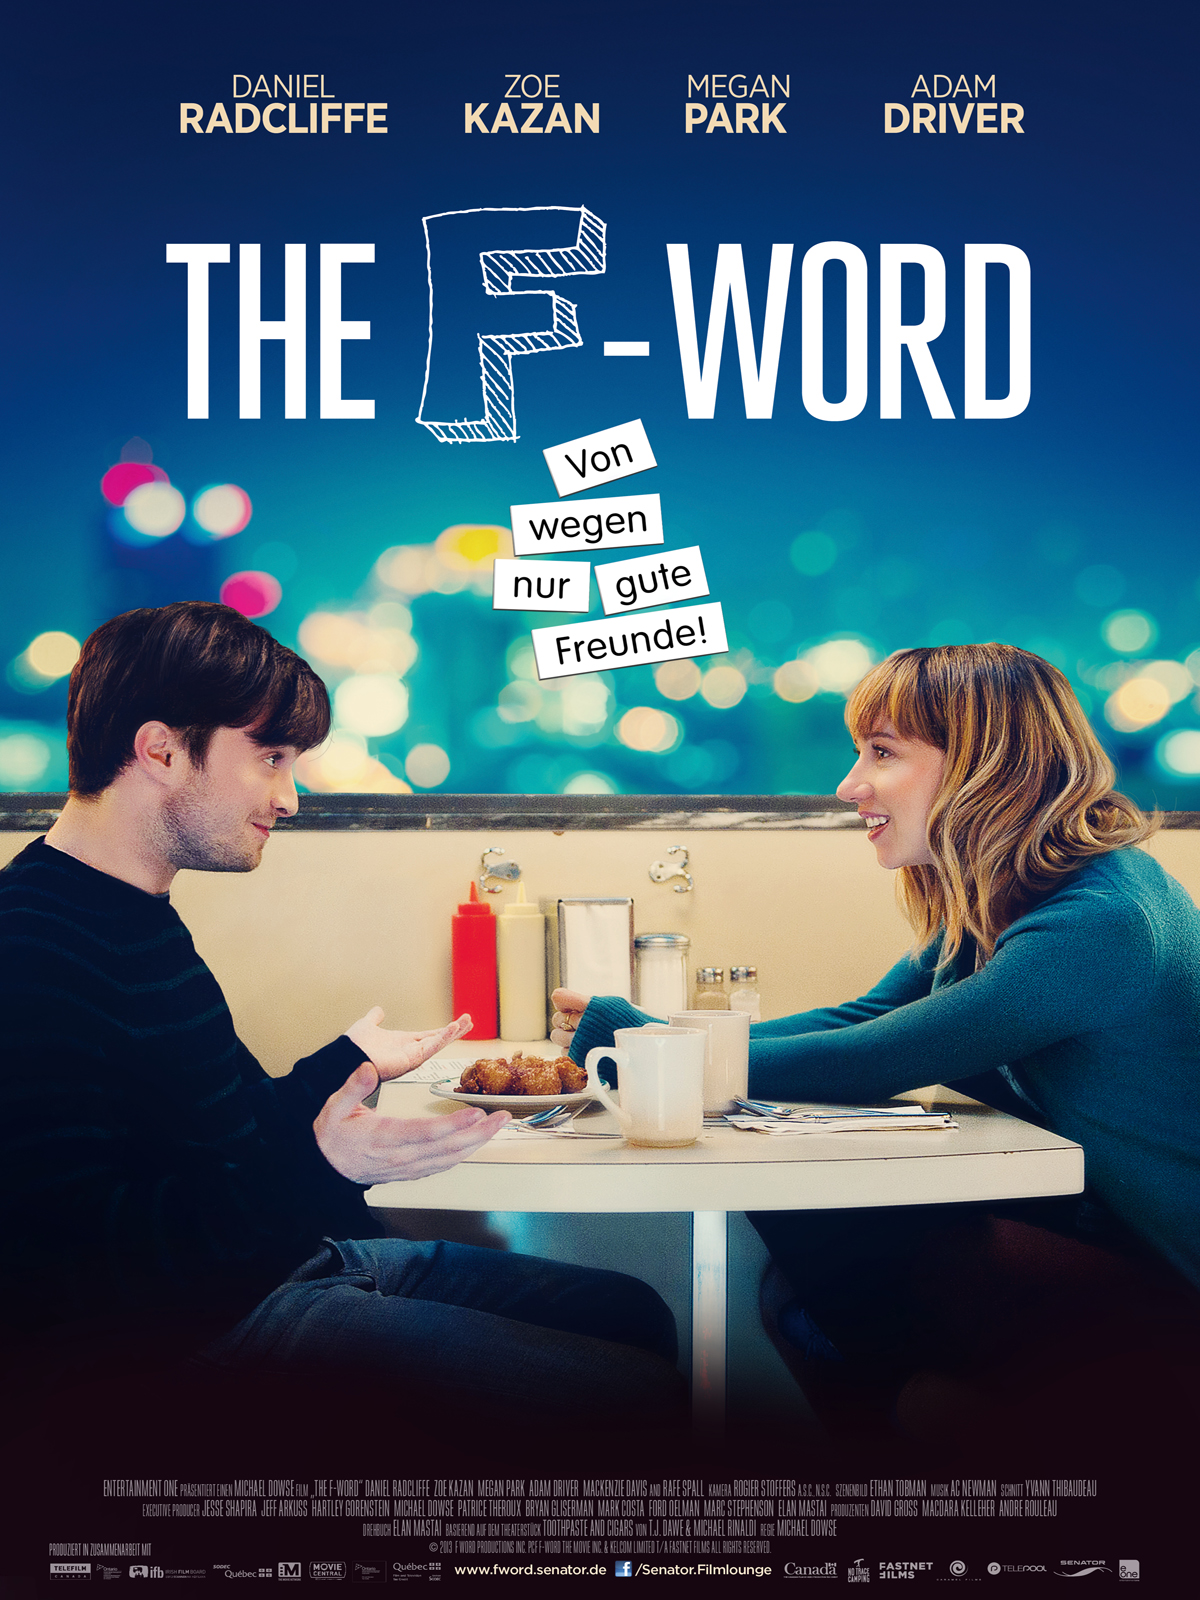 The f word movie